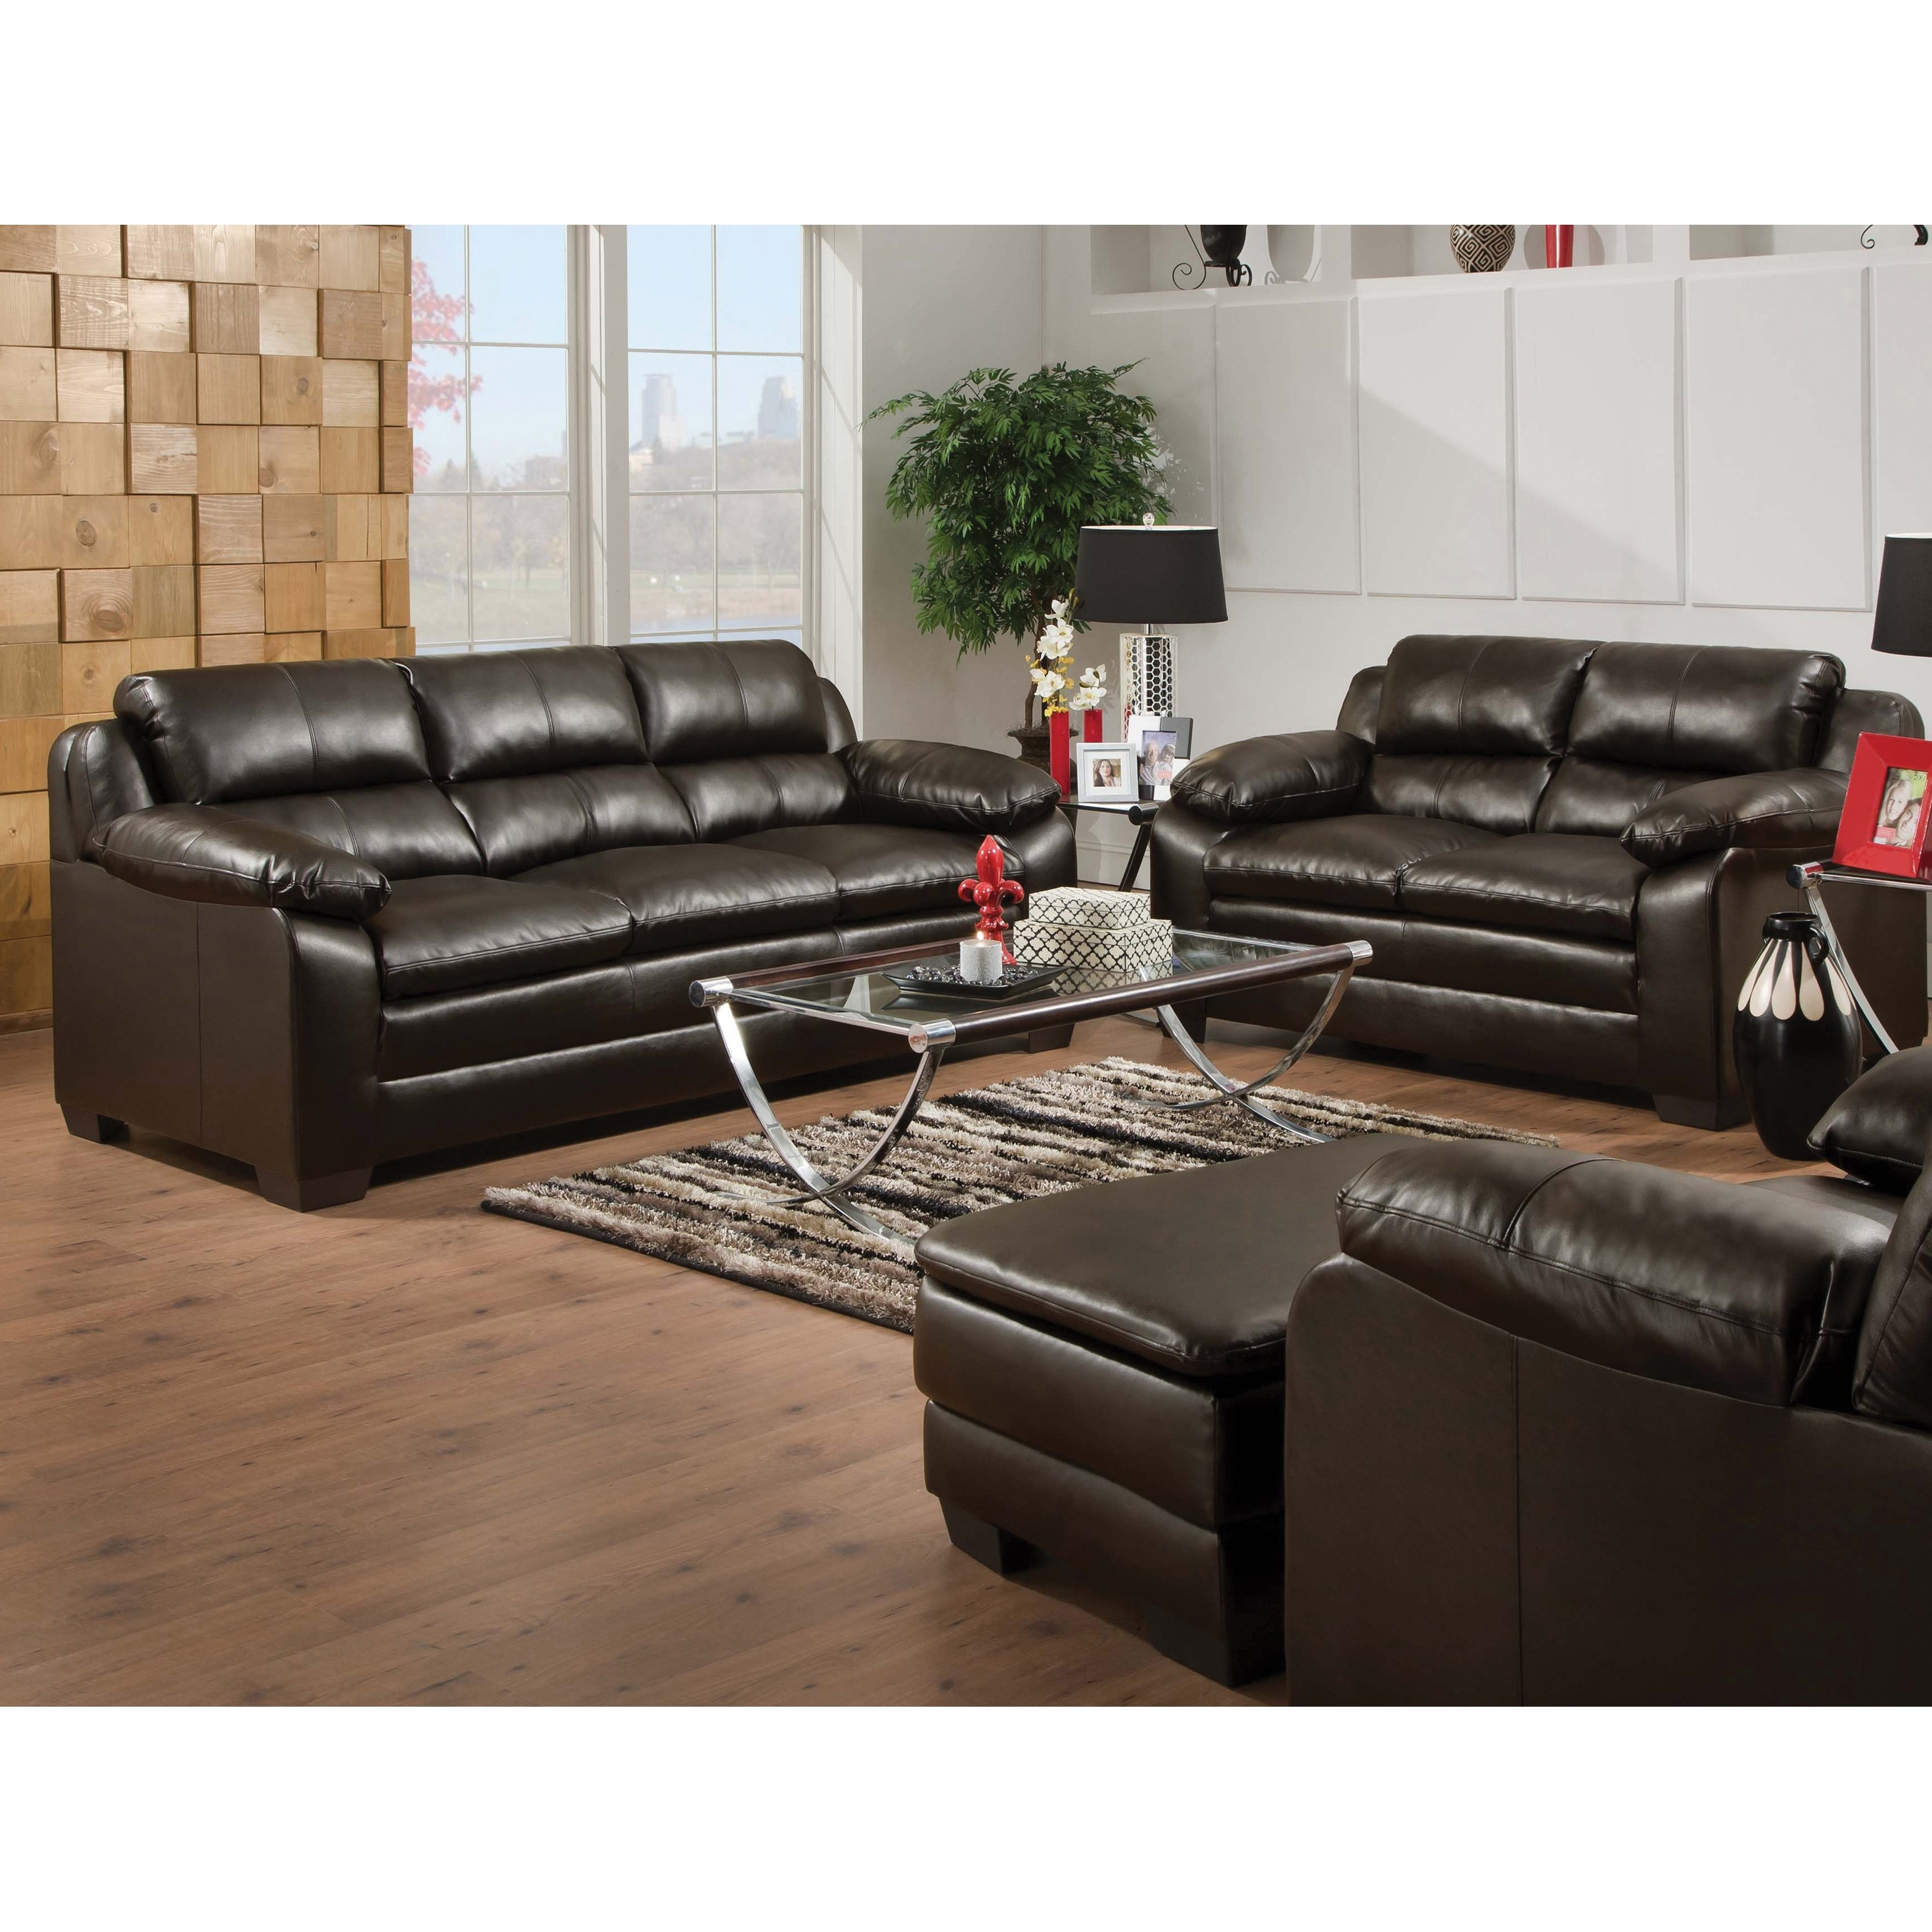 Shop Art Van Maddox Espresso Sofa And Loveseat Set – Free Shipping Inside Maddox Oversized Sofa Chairs (View 24 of 25)